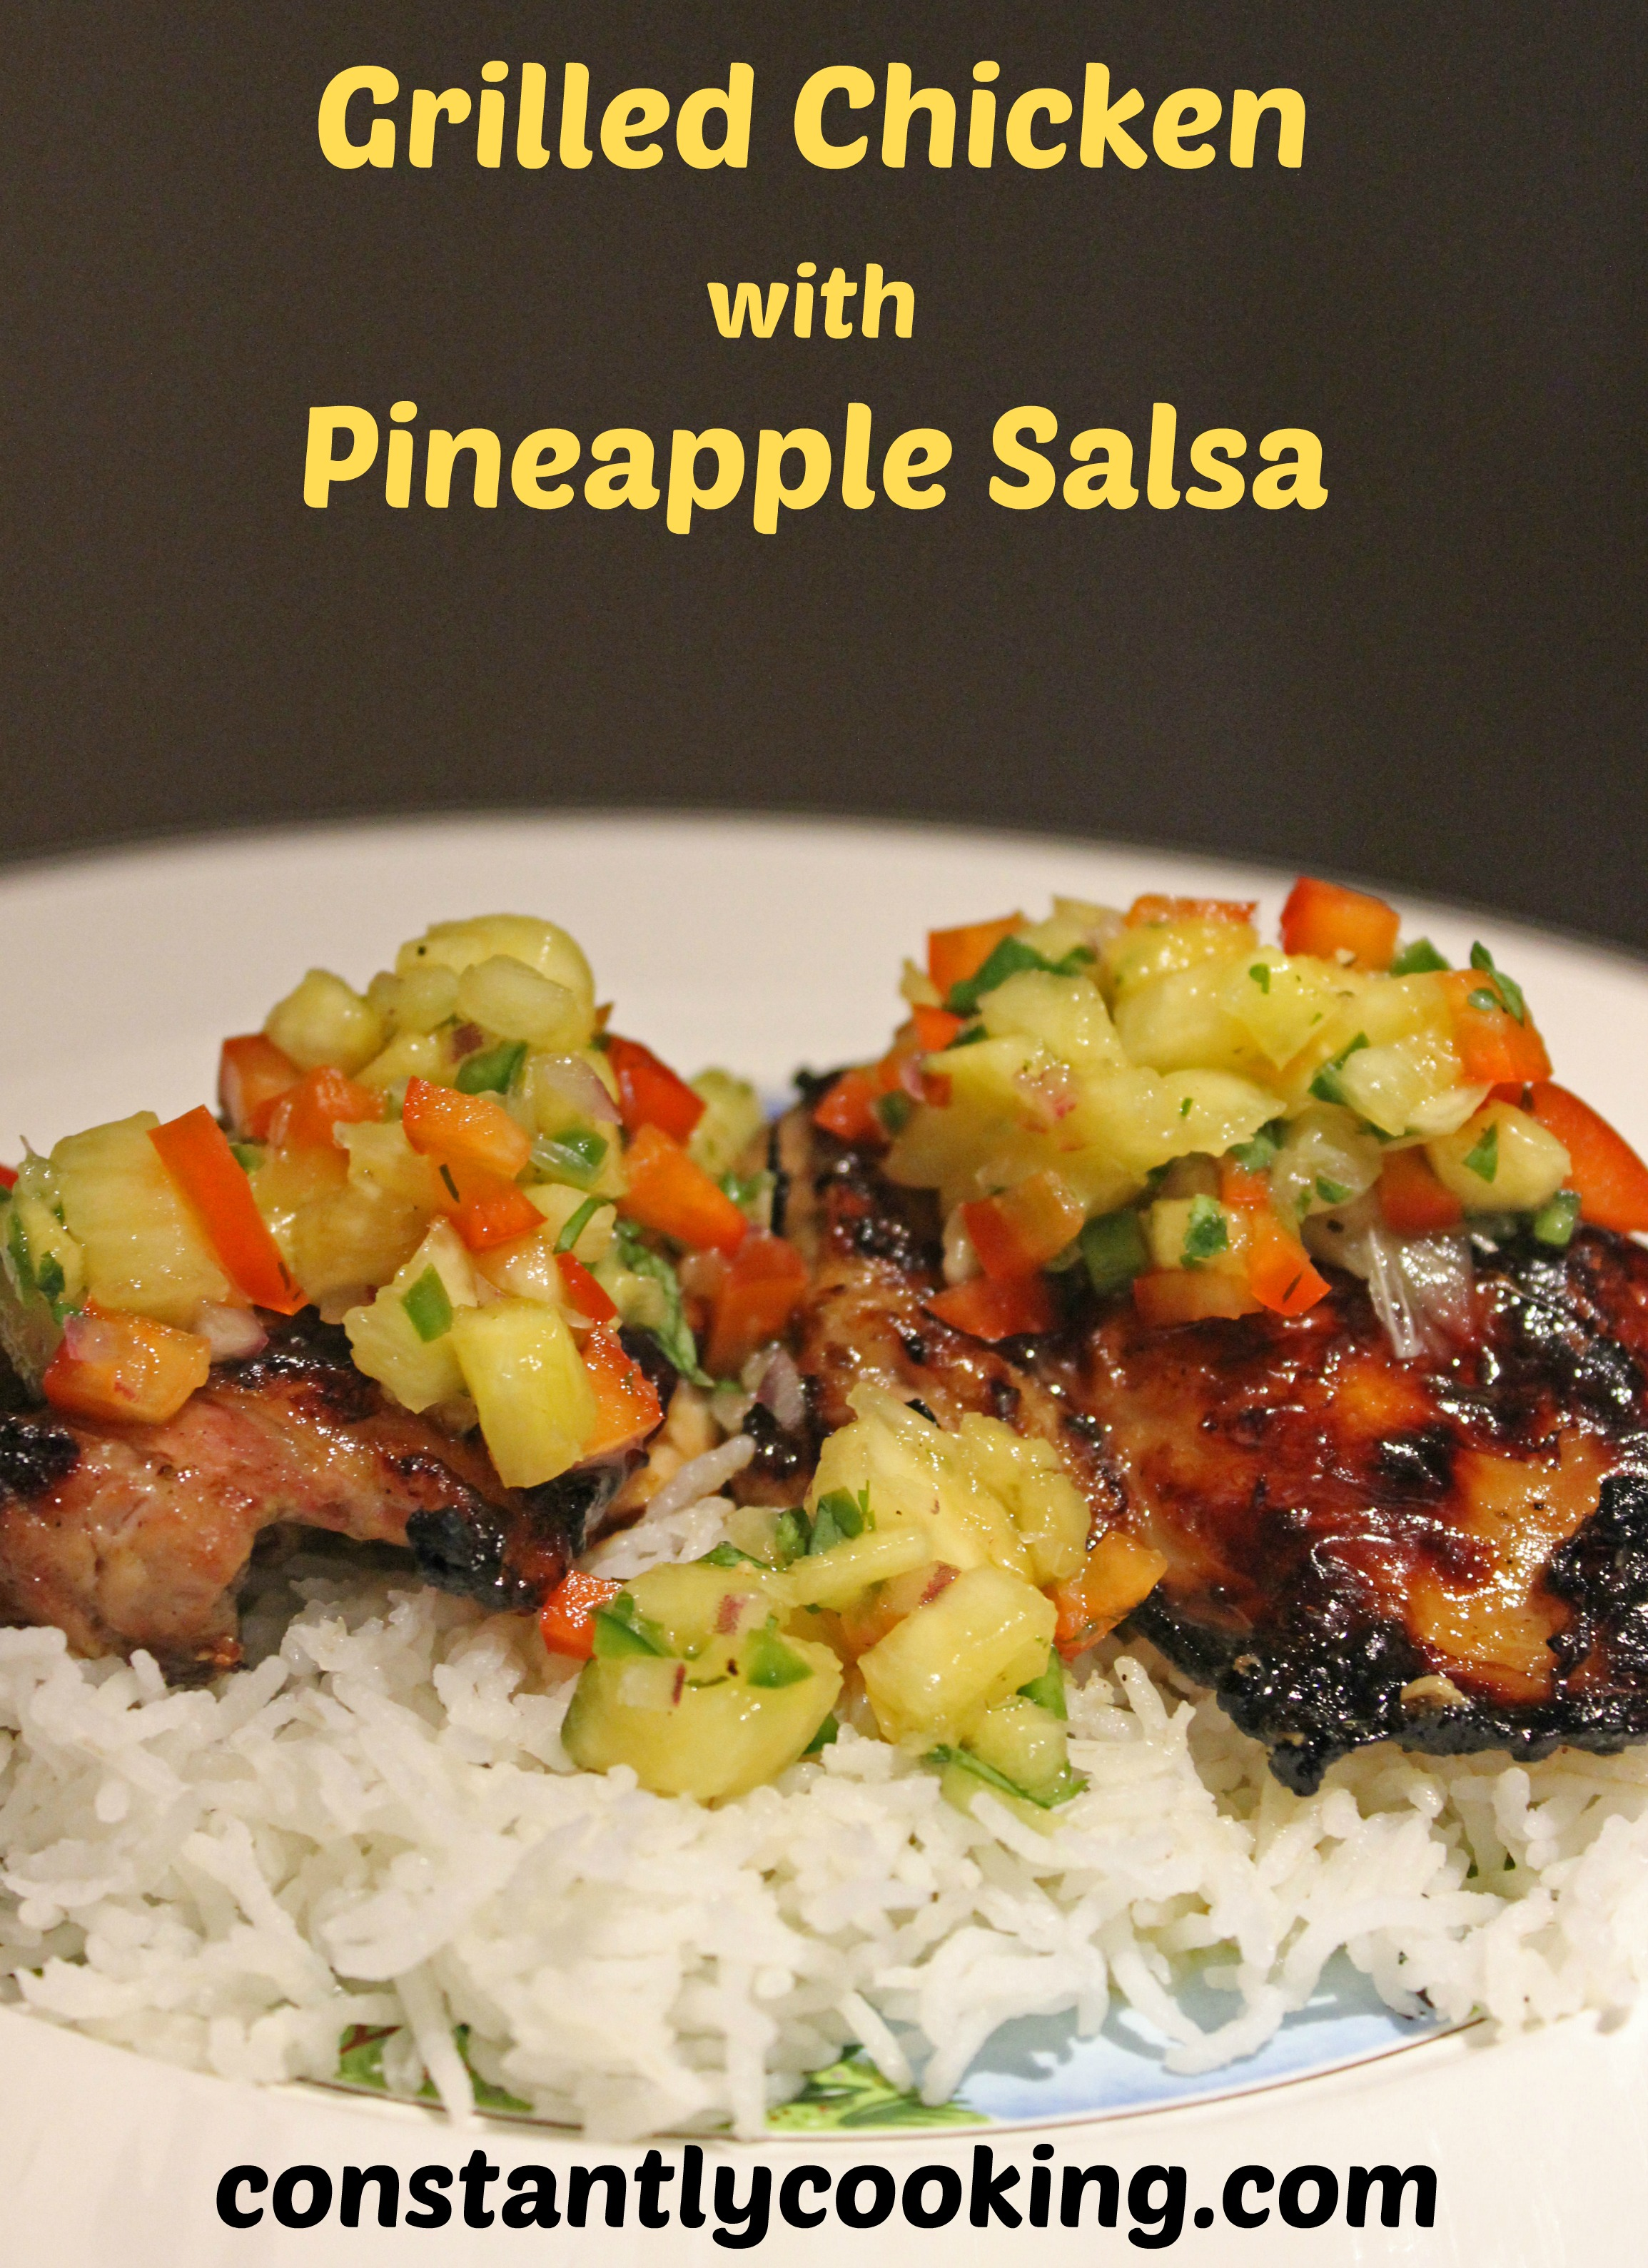 Grilled Chicken with Pineapple Salsa   Constantly Cooking